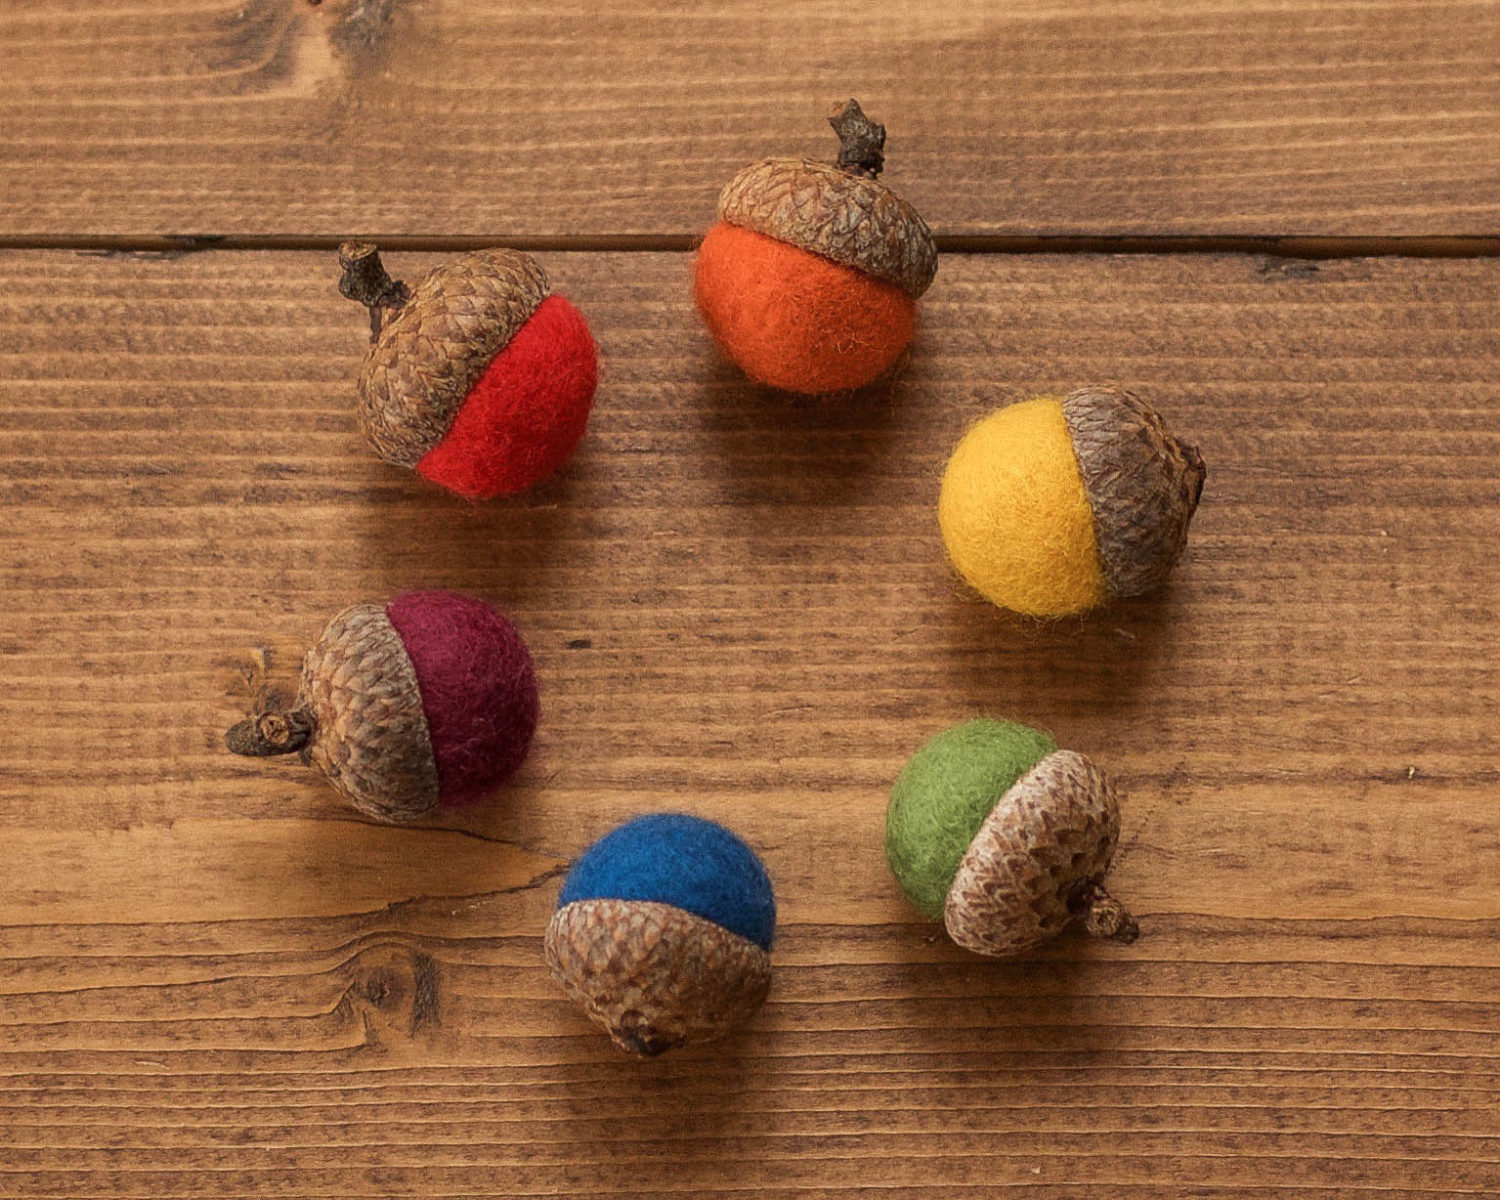 25% Donated to LGBT Charity, Rainbow Felted Acorns, Felt Acorn, Home Decor, Natural, Waldorf, Weddings, Woodland Decor, Rustic, Party Favors